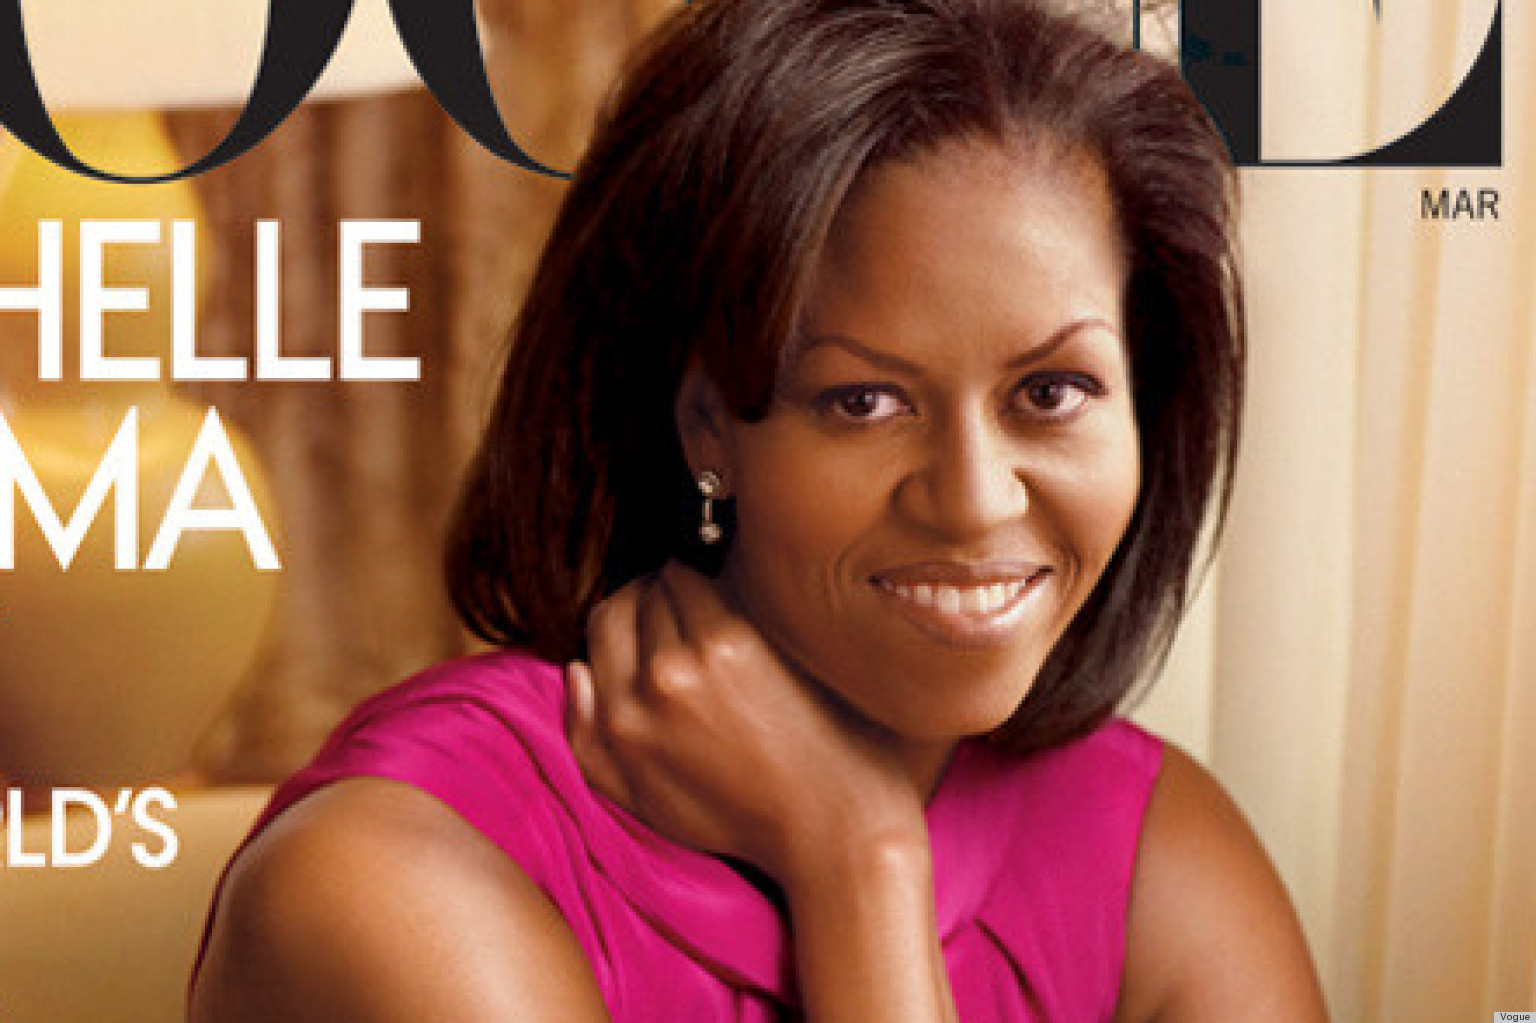 Michelle Obamas Eyebrows Appear Softer On Vogue April Cover